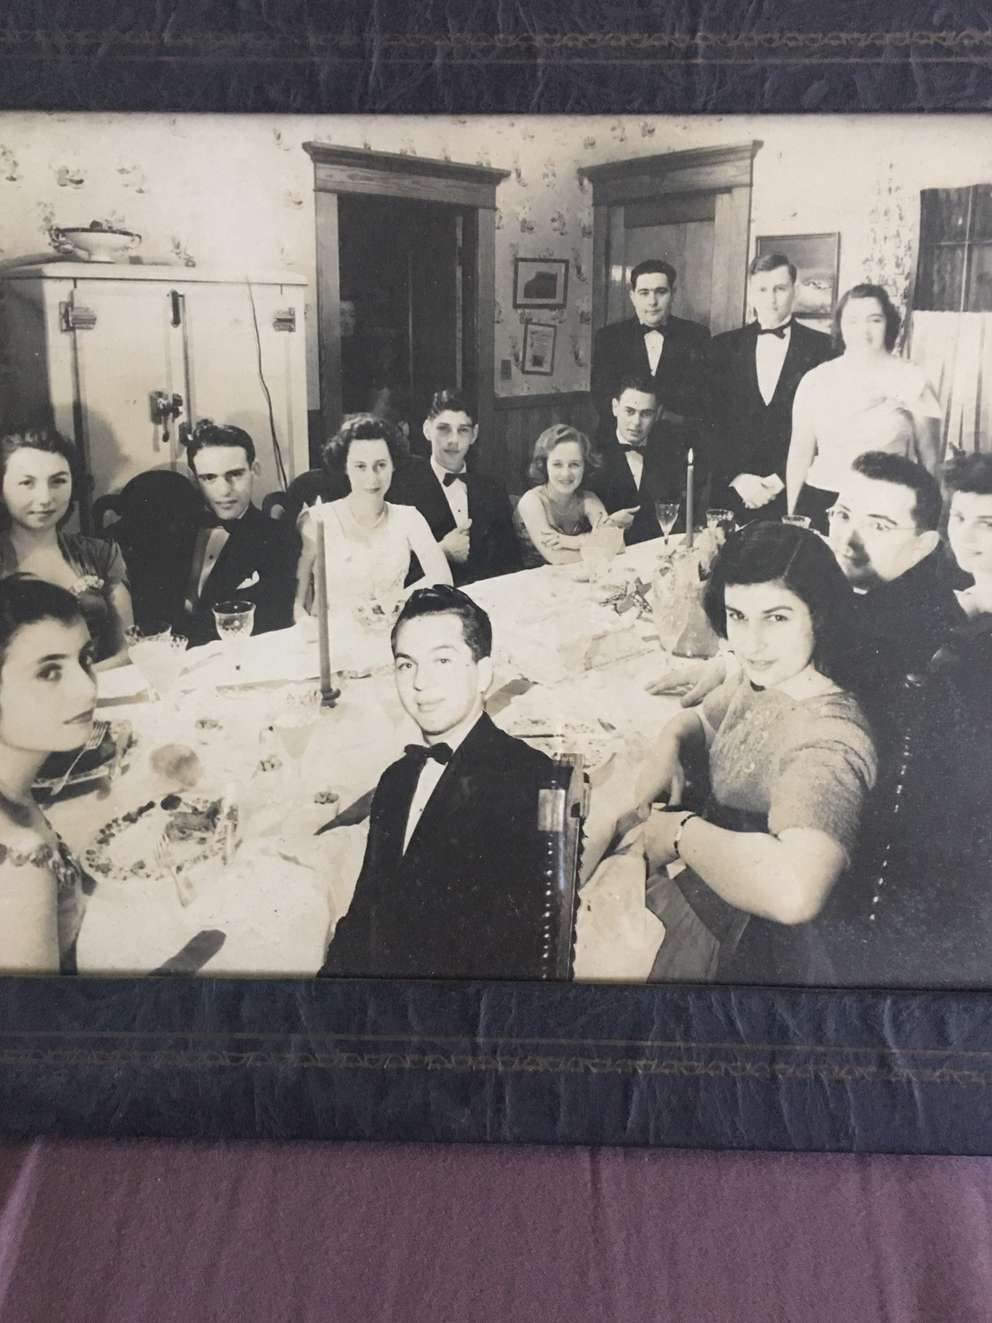 Bernie Herman, front and center, was left out of the photo of his 16th birthday party, so the photographer awkwardly cropped him in. (Photo courtesy Beth Herman)